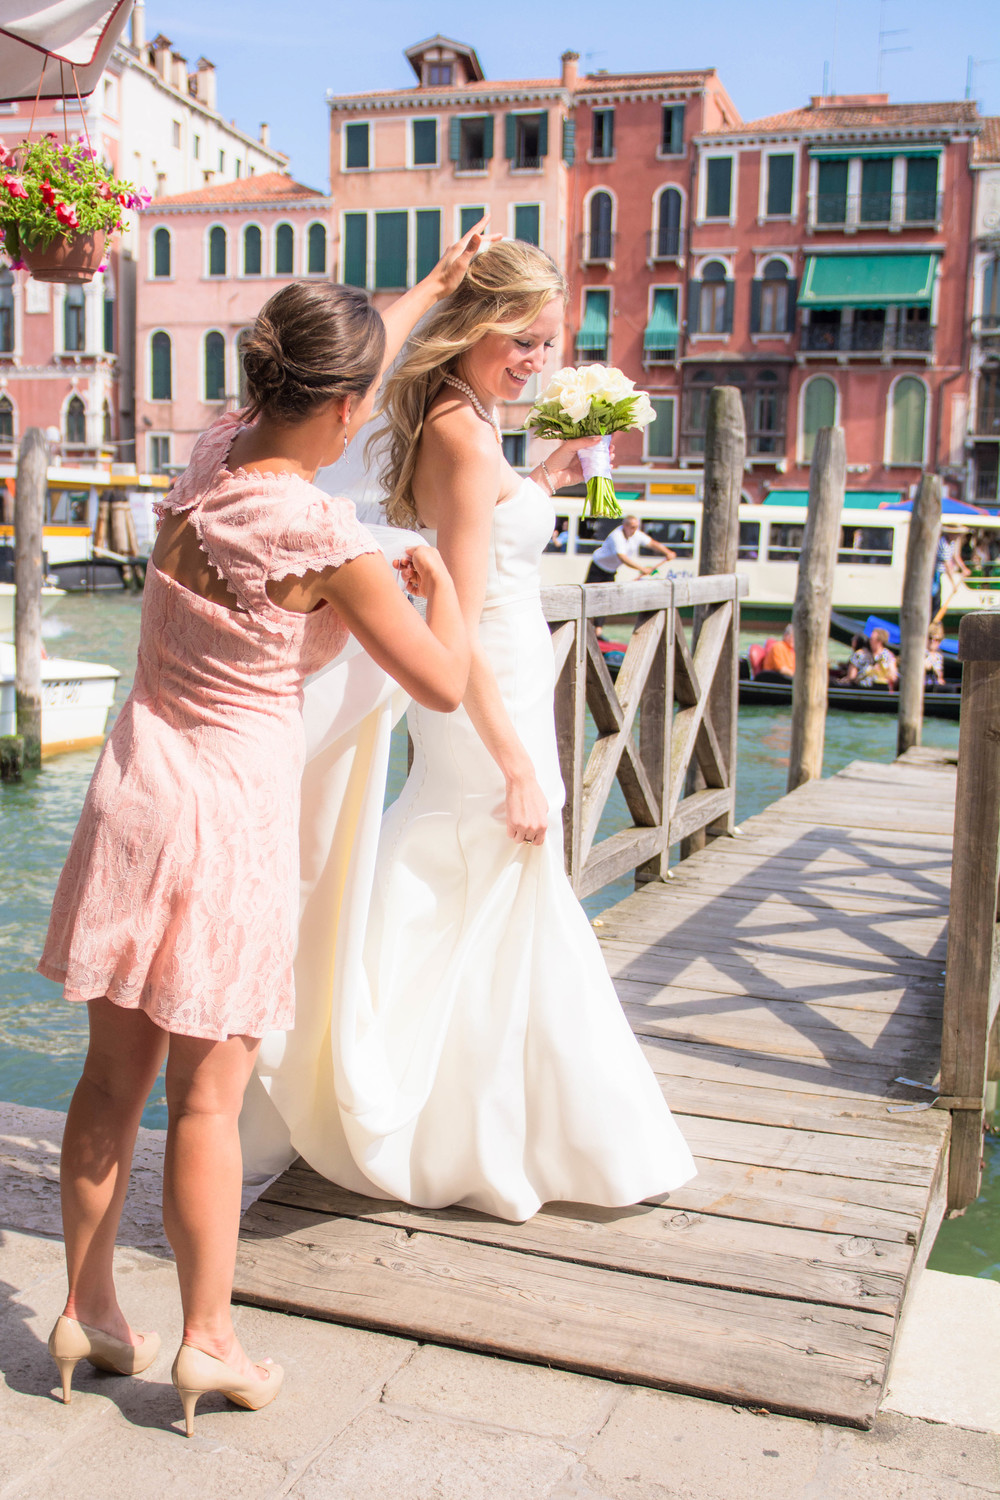 Venice Italy Wedding Canals